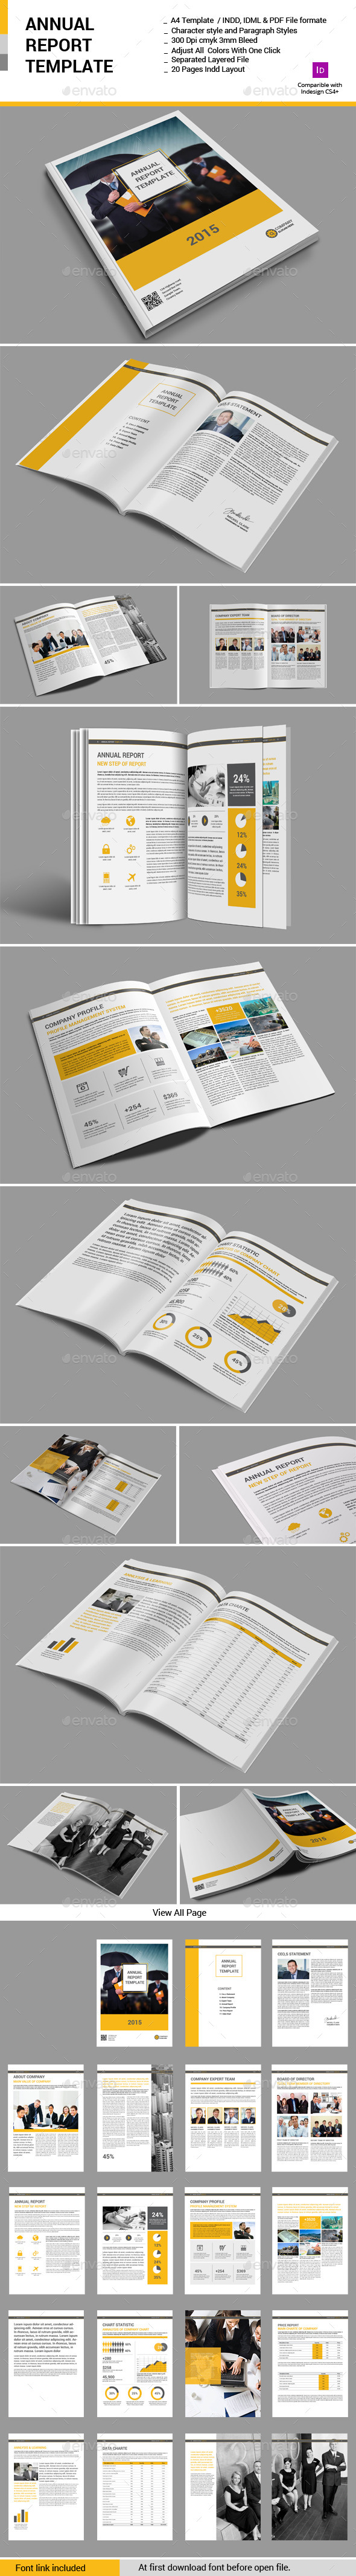 GraphicRiver Annual Report Template 10940307